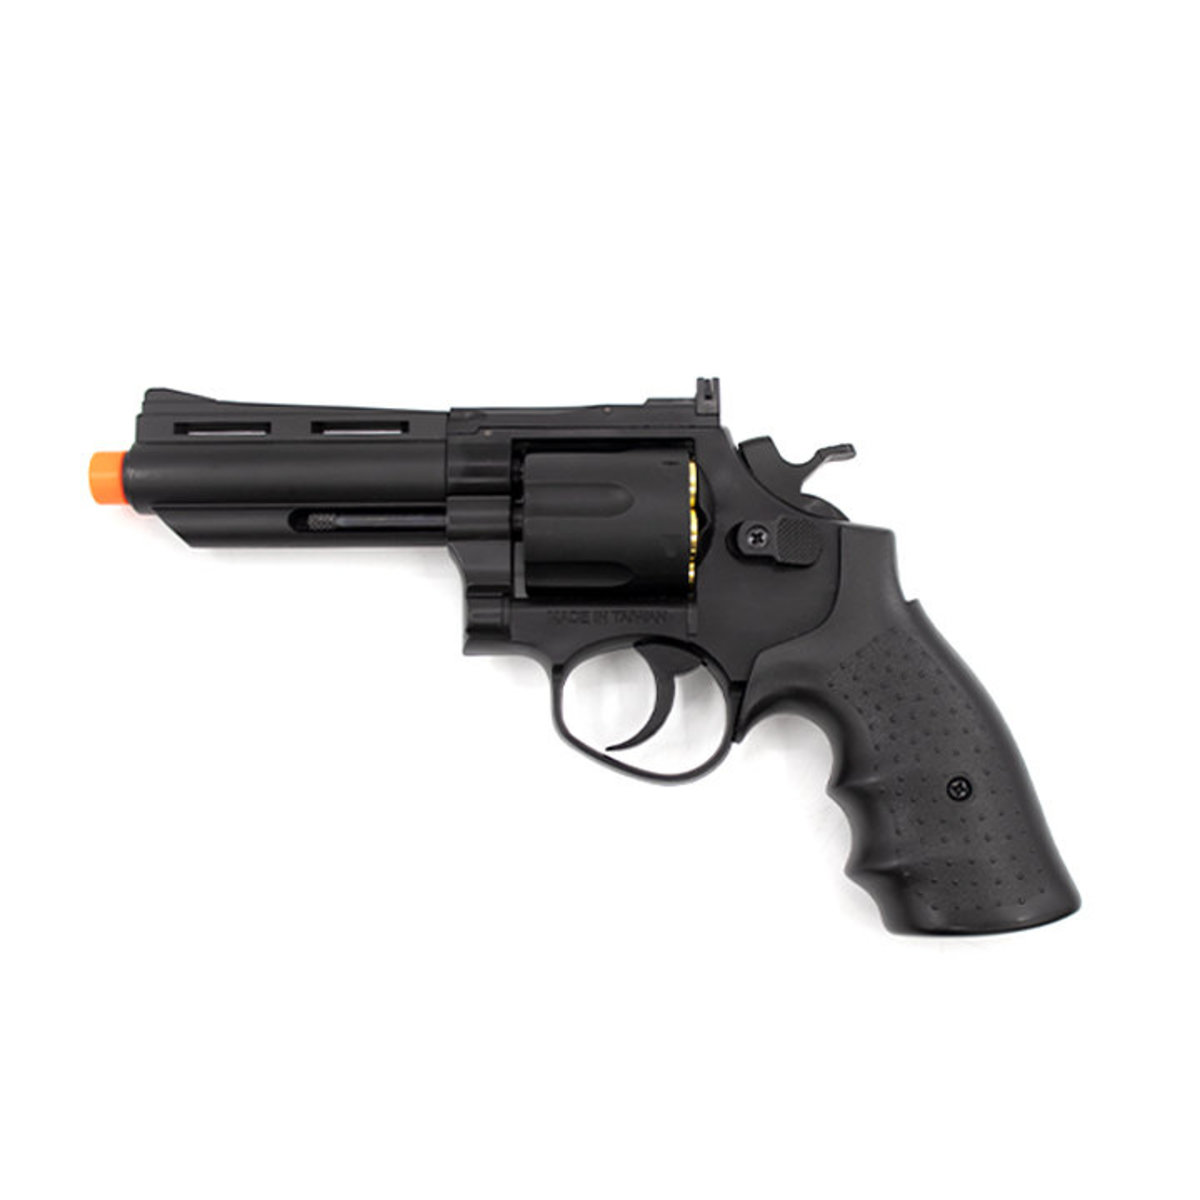 View larger image of Valken Infinity 357 Green Gas Airsoft Revolver